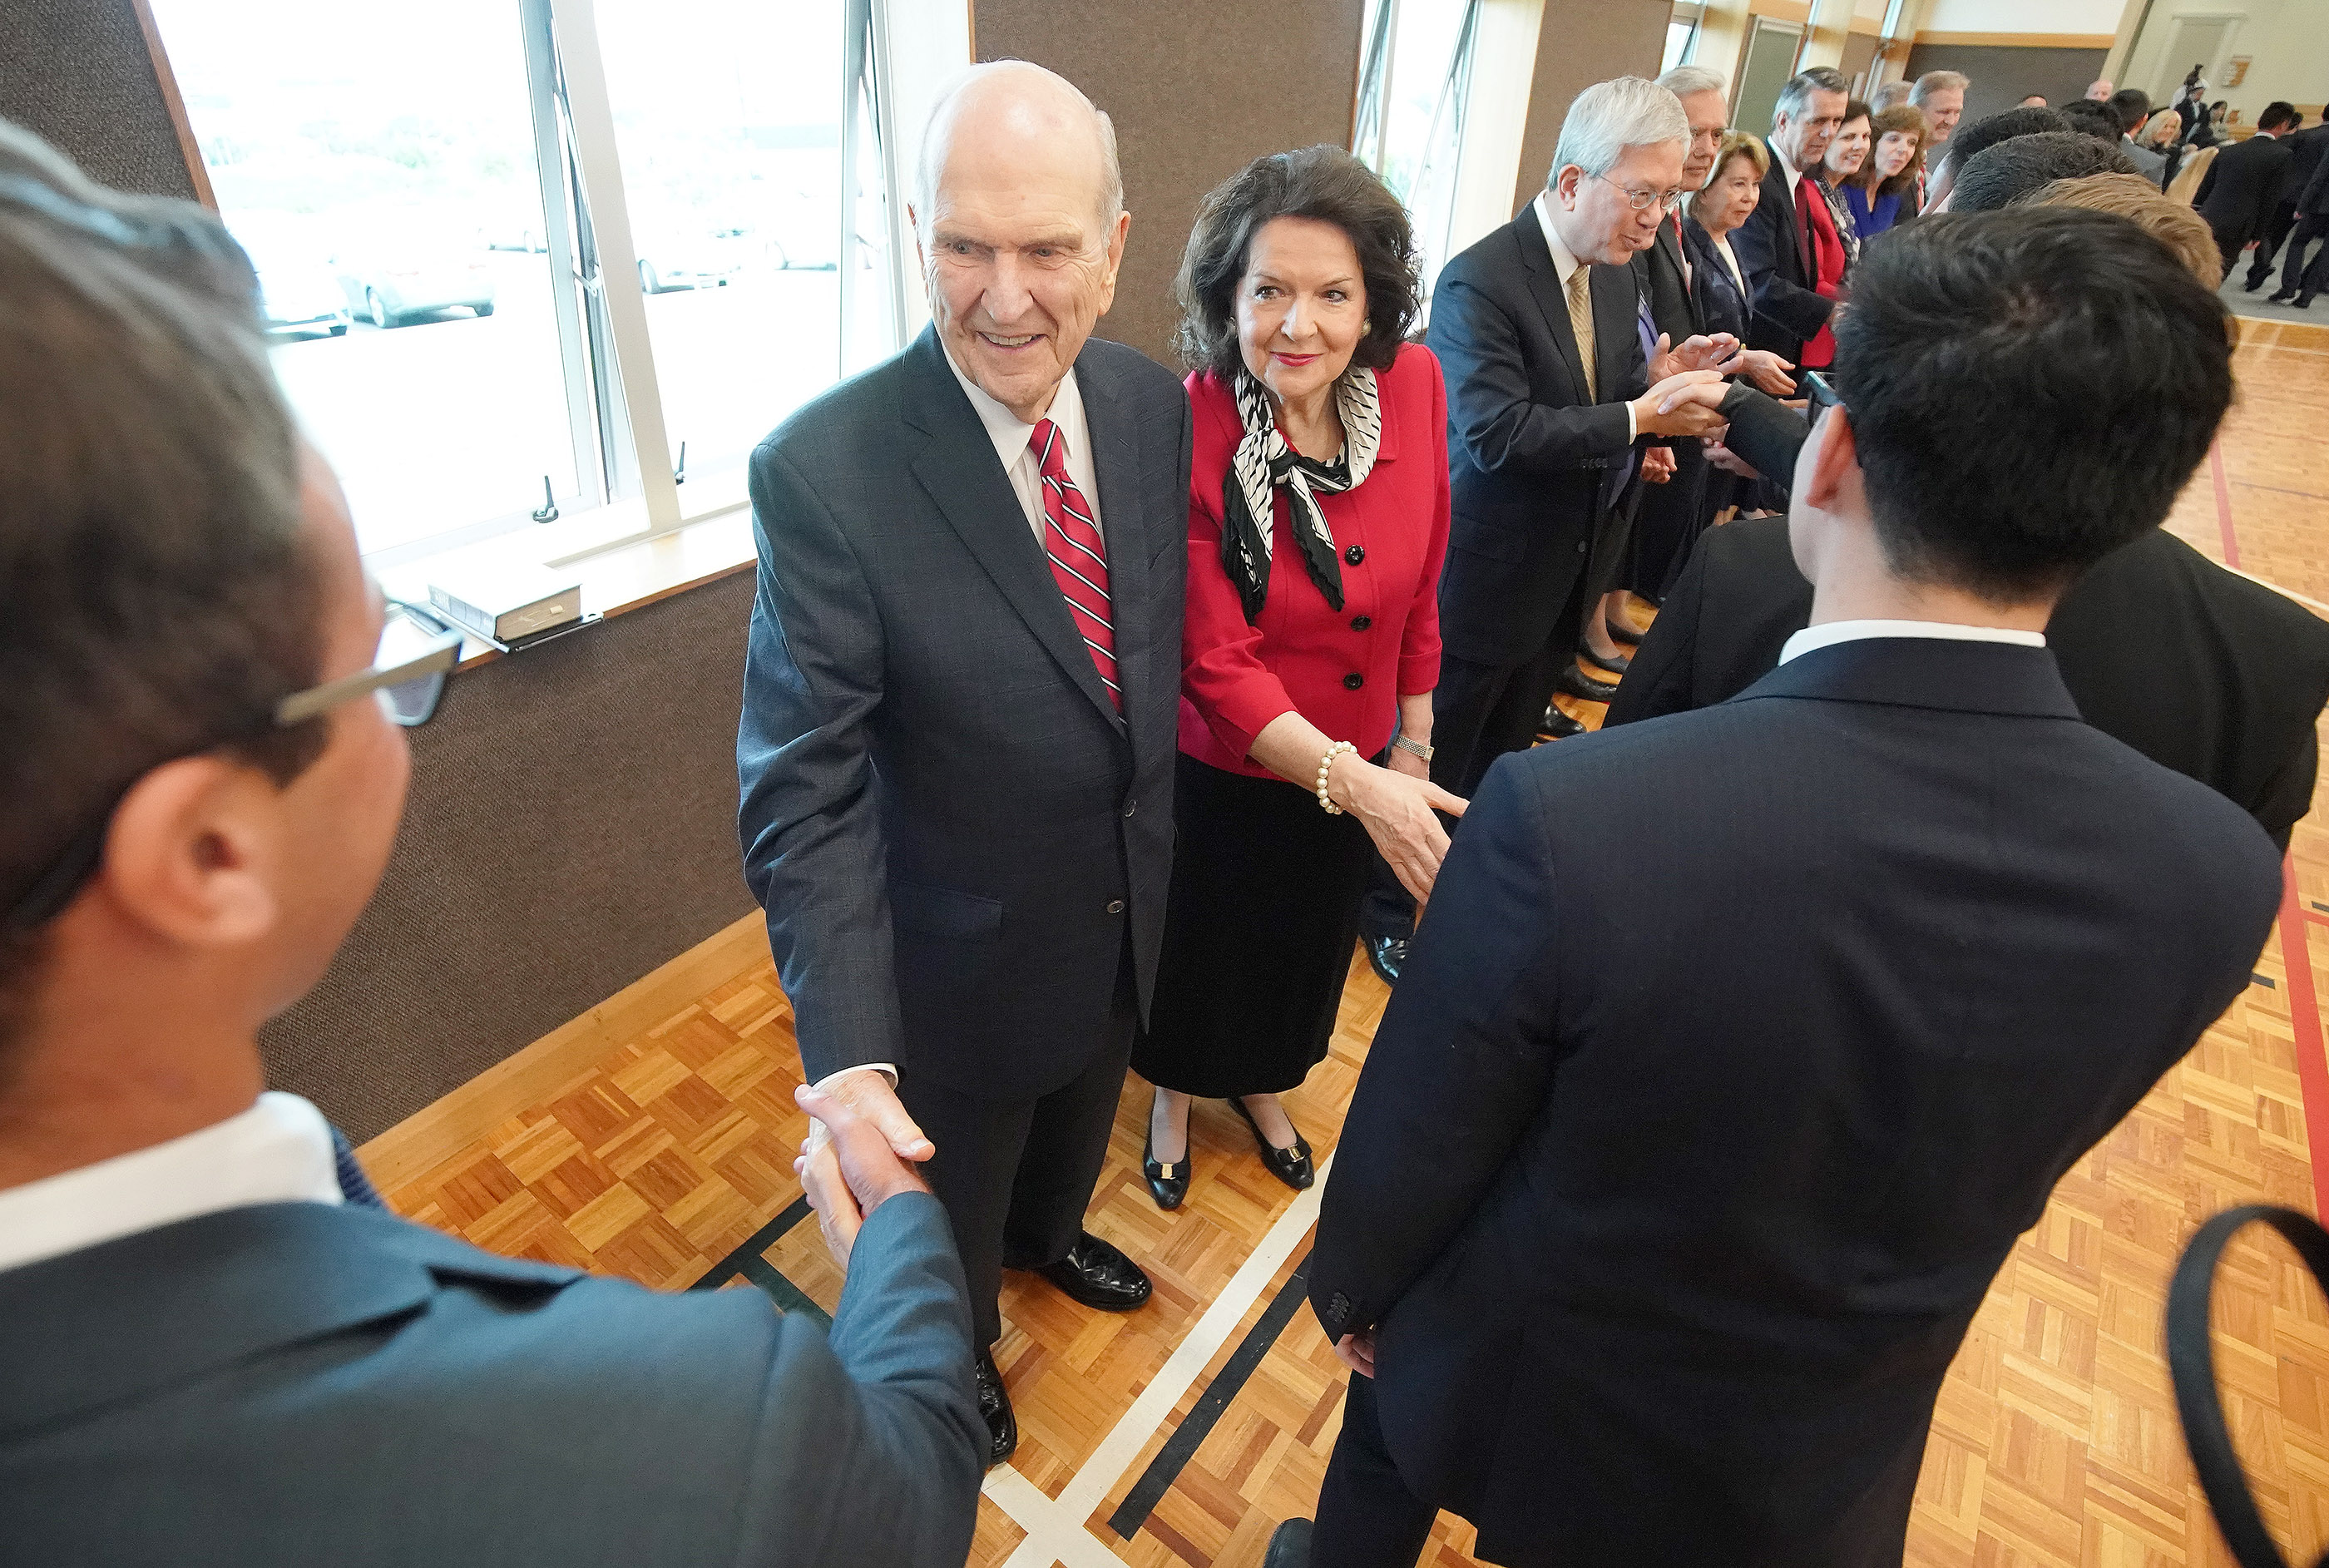 President Russell M. Nelson of The Church of Jesus Christ of Latter-day Saints and his wife, Sister Wendy Nelson, greet missionaries in Auckland, New Zealand, on Tuesday, May 21, 2019.